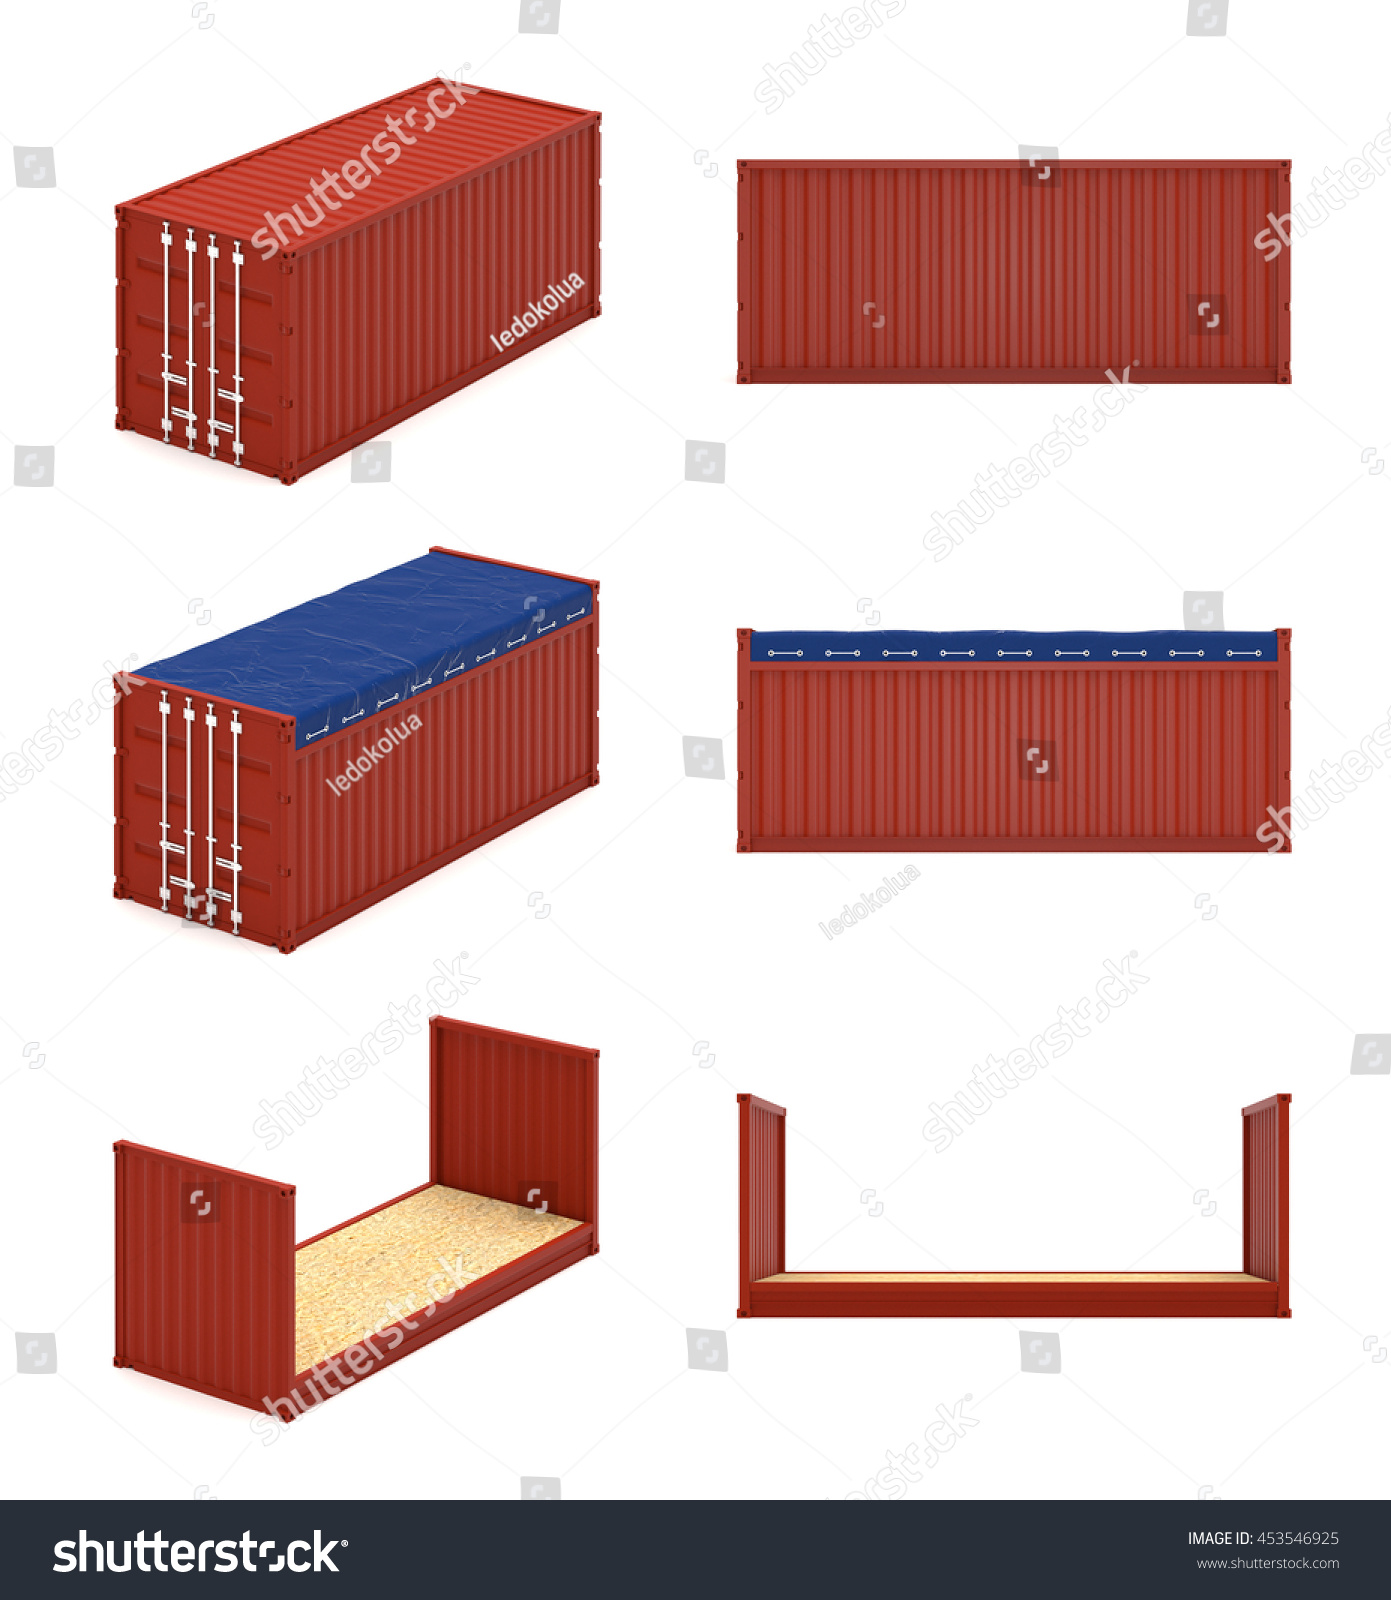 Best Kitchen Gallery: Isometric Cargo Containers Types 20 Feet Stock Illustration of Shipping Container Types on rachelxblog.com